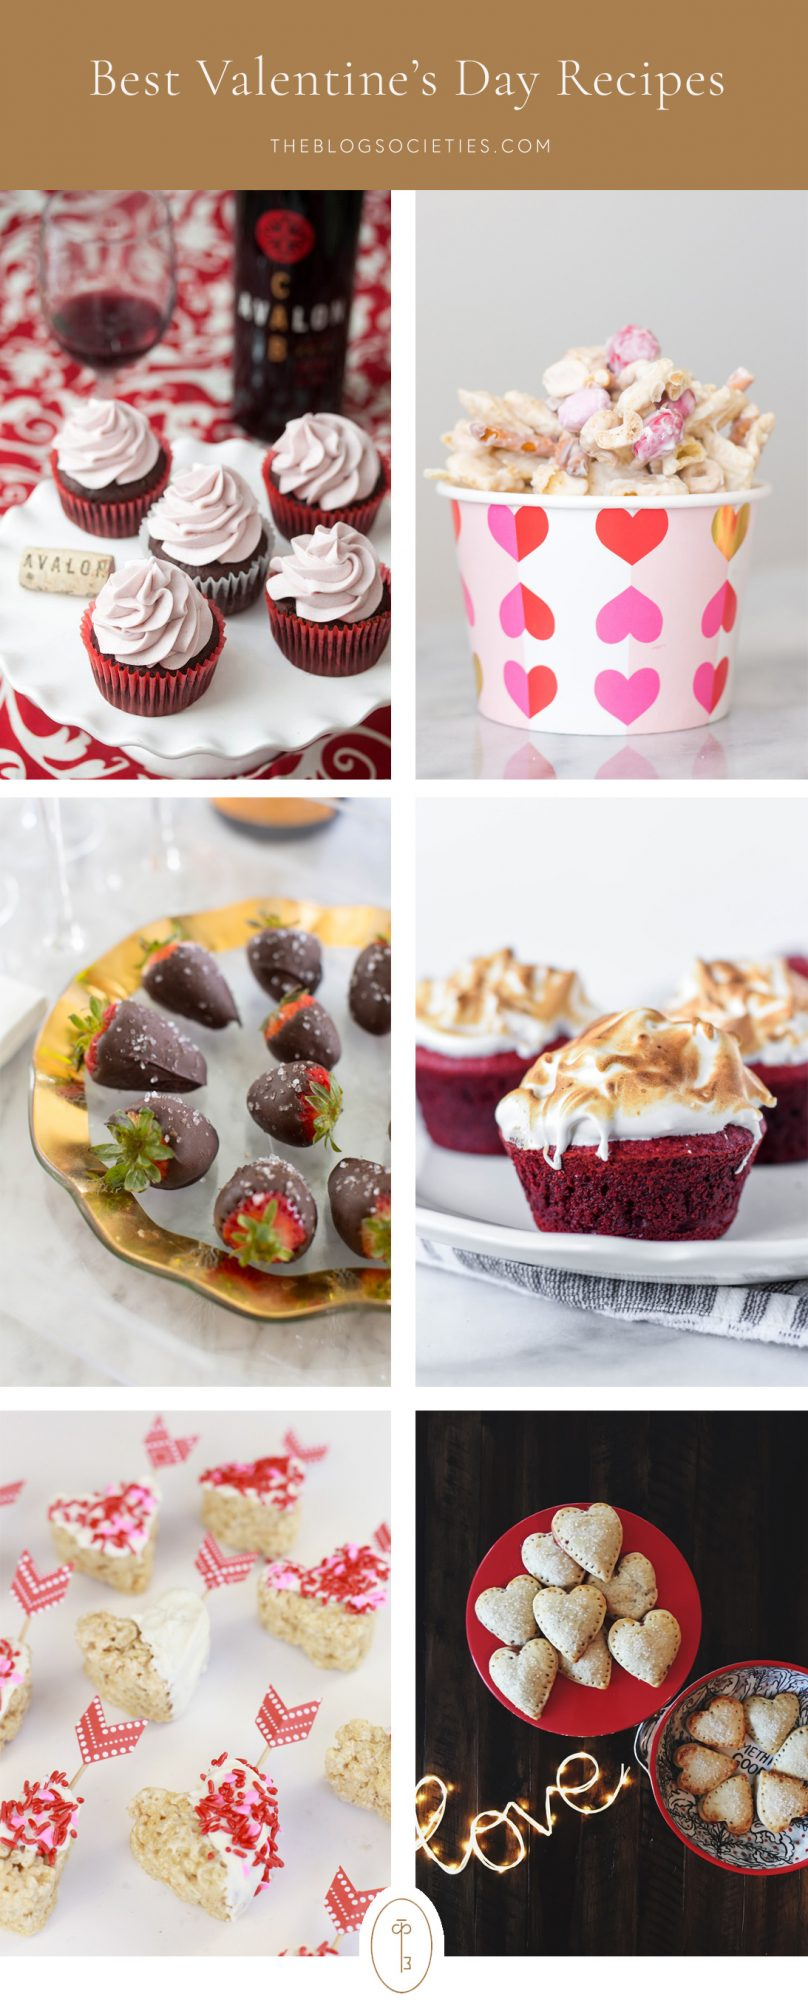 best valentine's day recipes to try - The Blog Societies